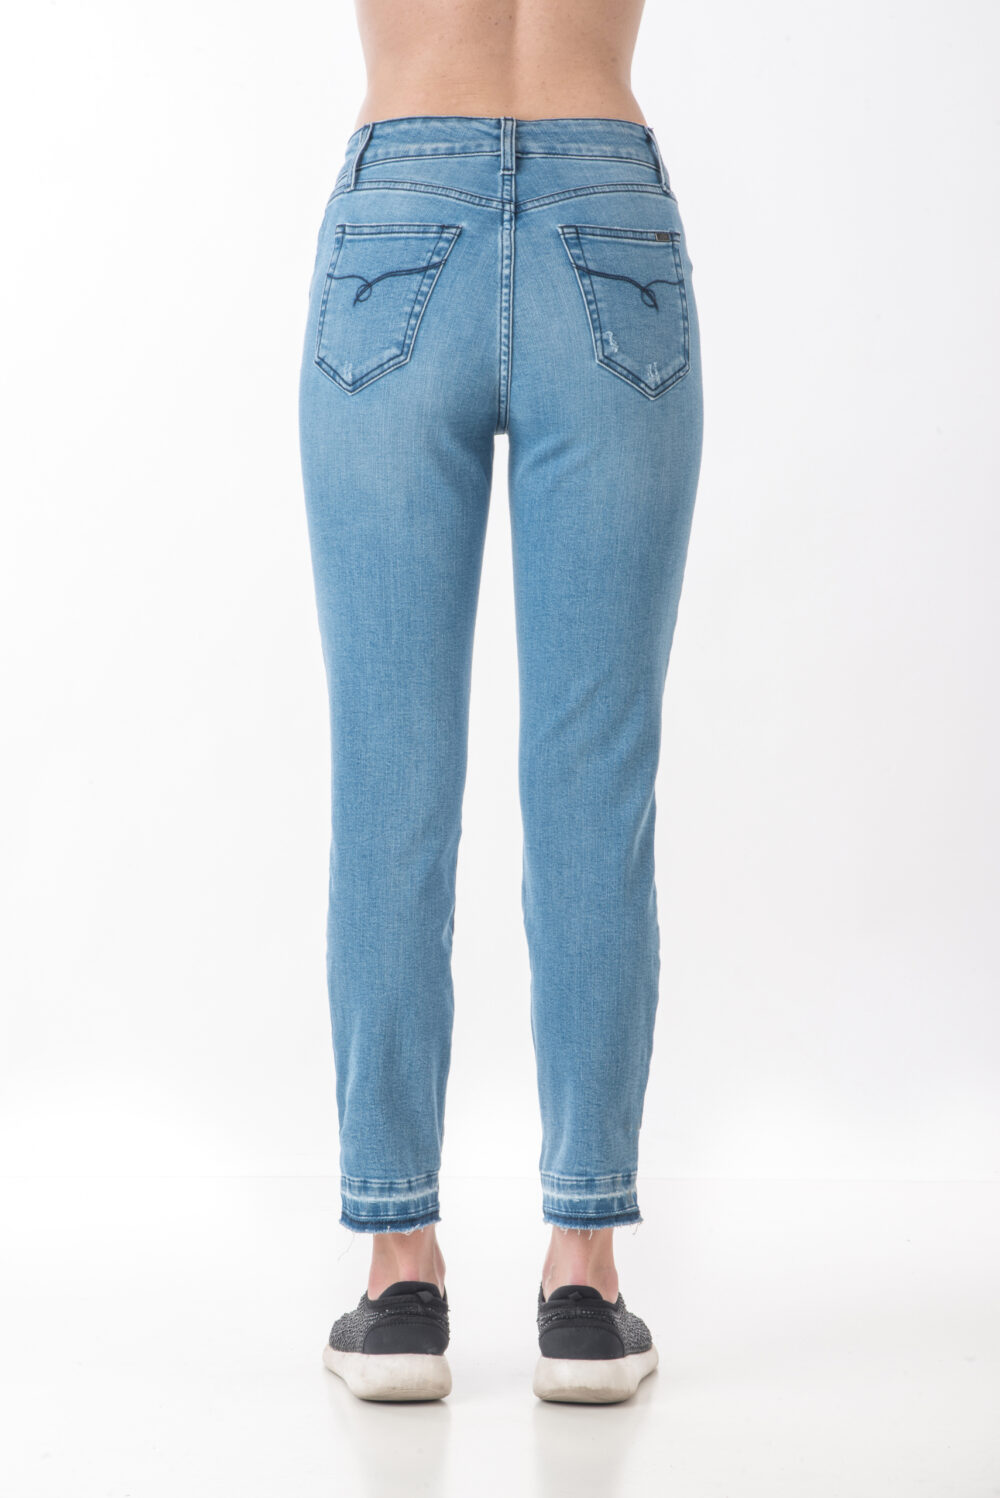 Jonny Q jeans Meryl X fit stretch old used 1 scaled